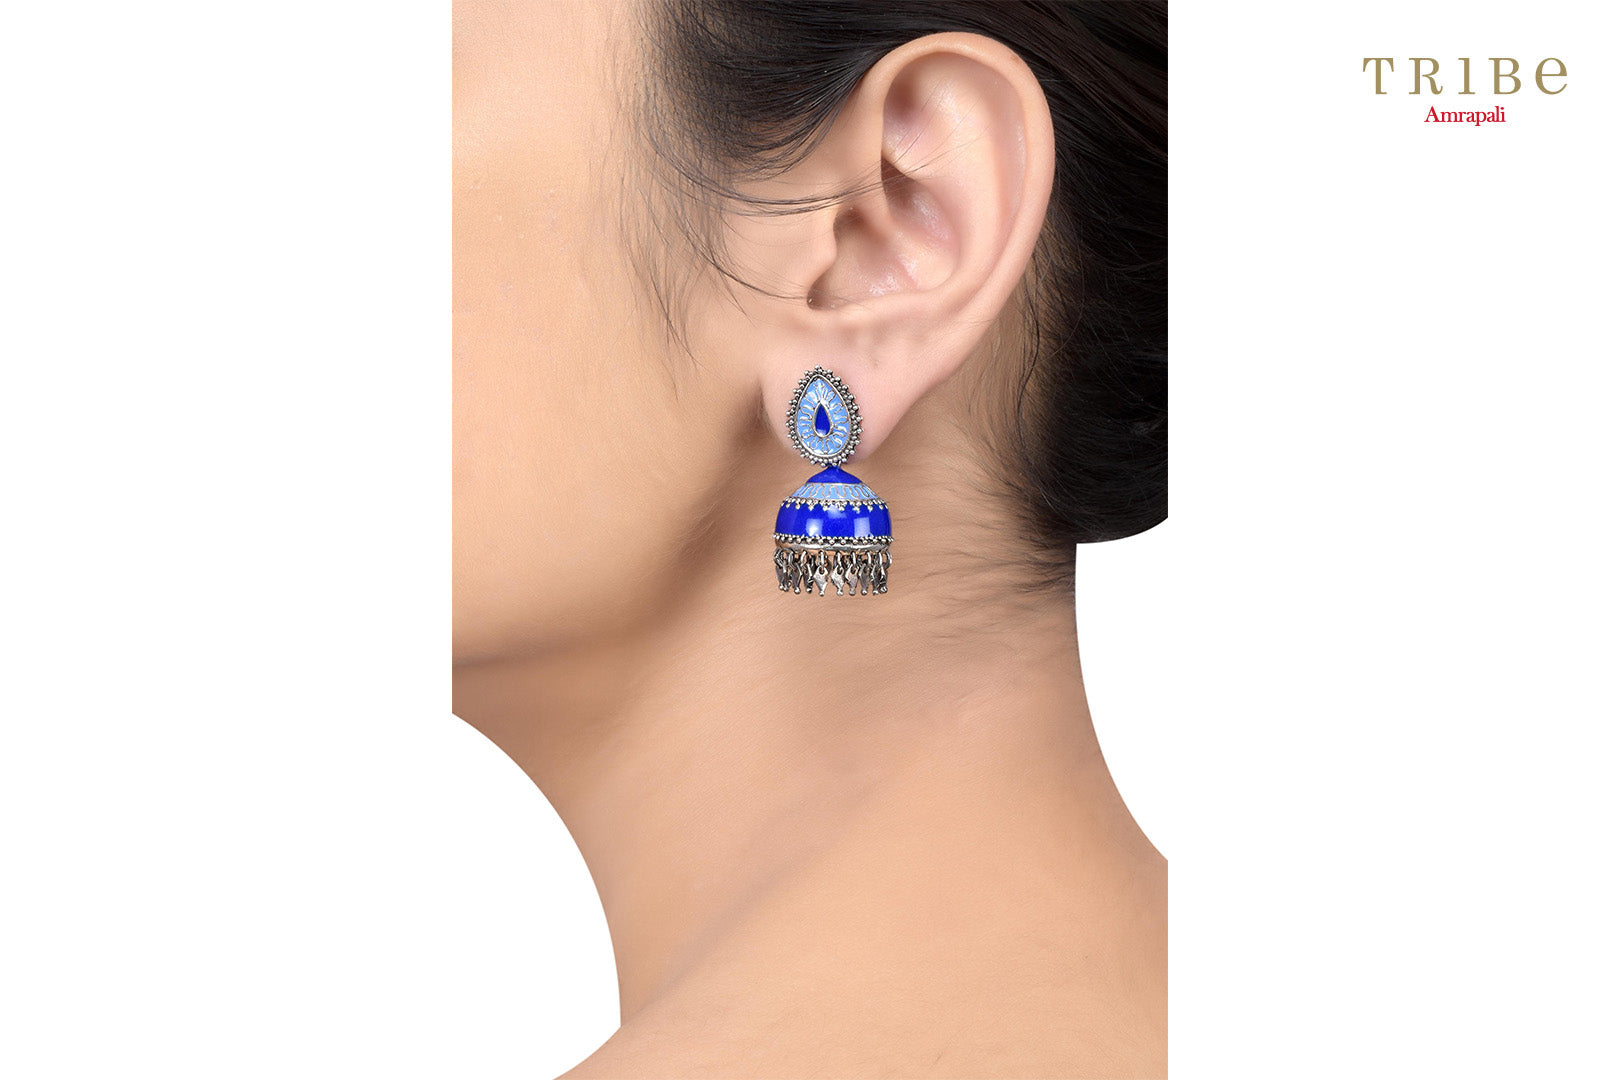 Ethnic Tribe Amrapali enameled rhombus charm drop small silver jhumki earrings buy online in USA.  If you want to shop such ethnic Indian silver earrings in USA, then look no further than Pure Elegance exclusive fashion store or shop online.-ear view